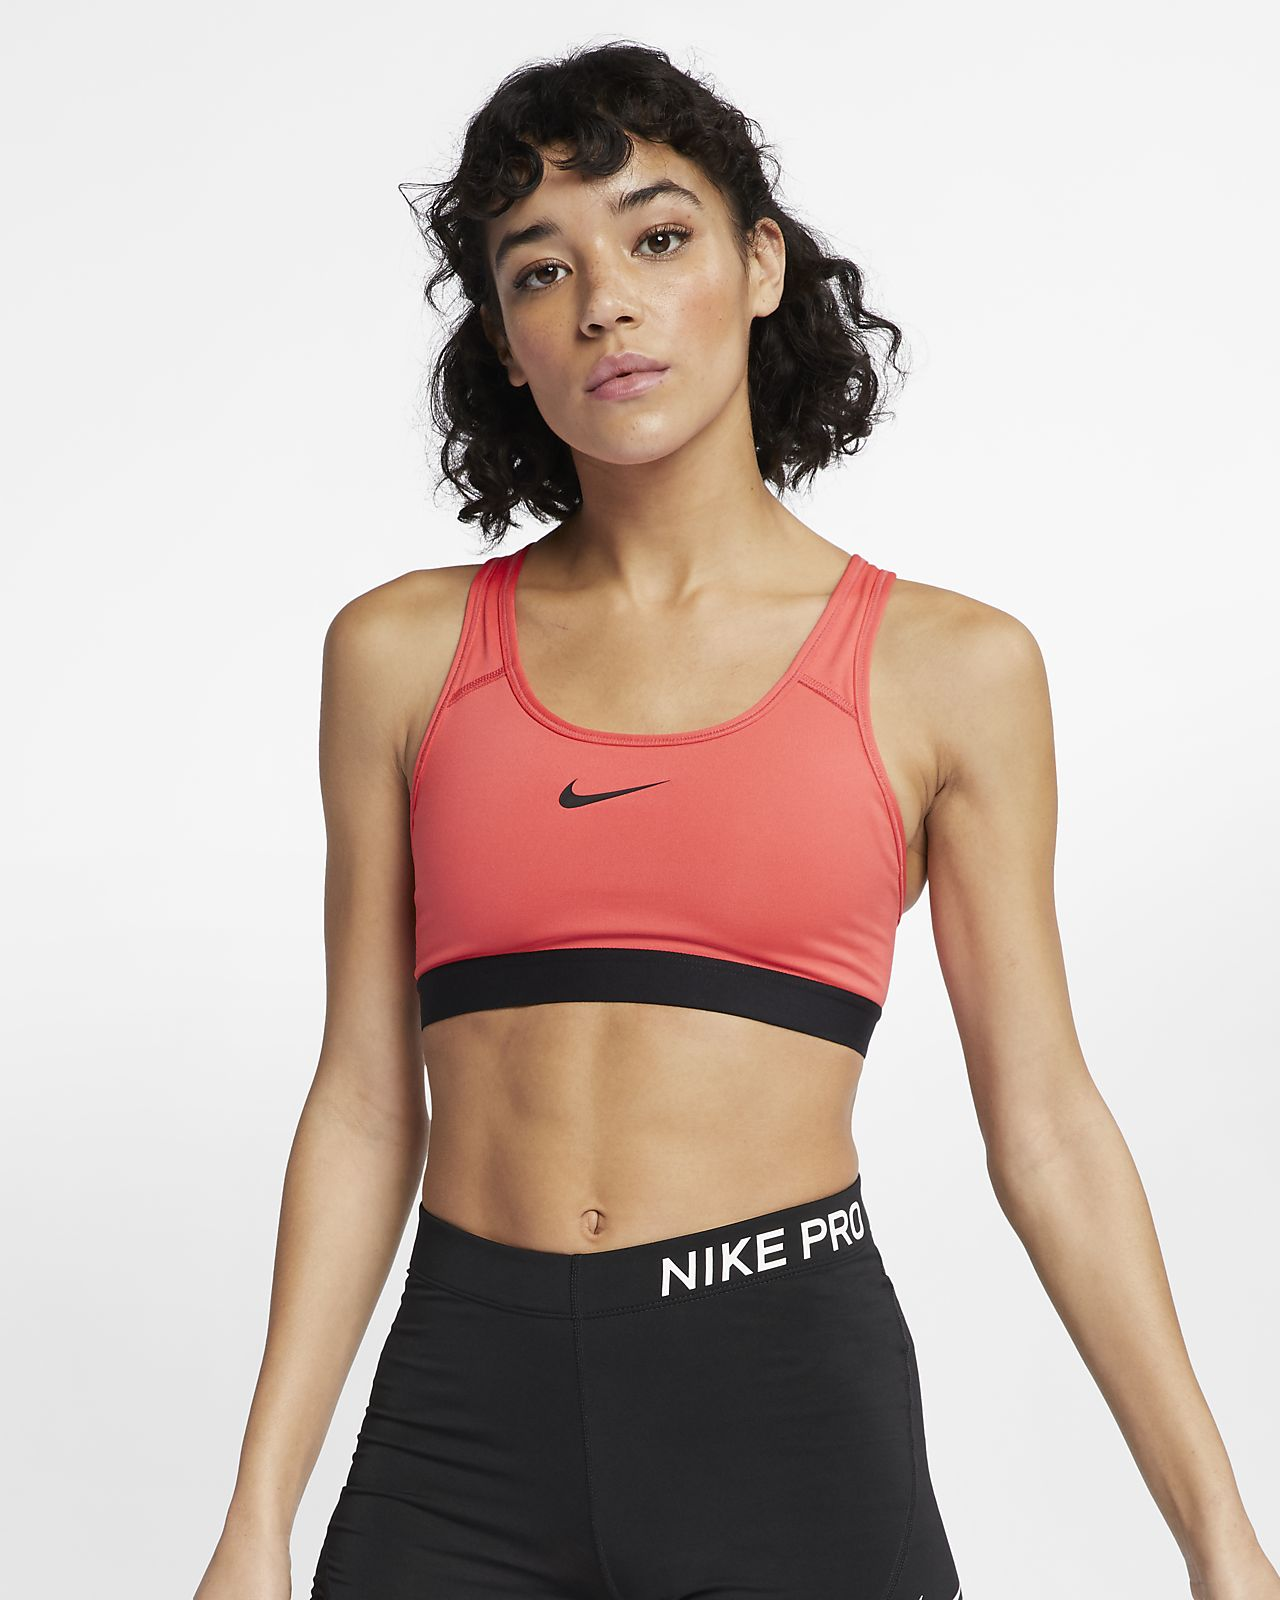 69718756f7 Nike Classic Padded Women s Medium-Support Sports Bra. Nike.com